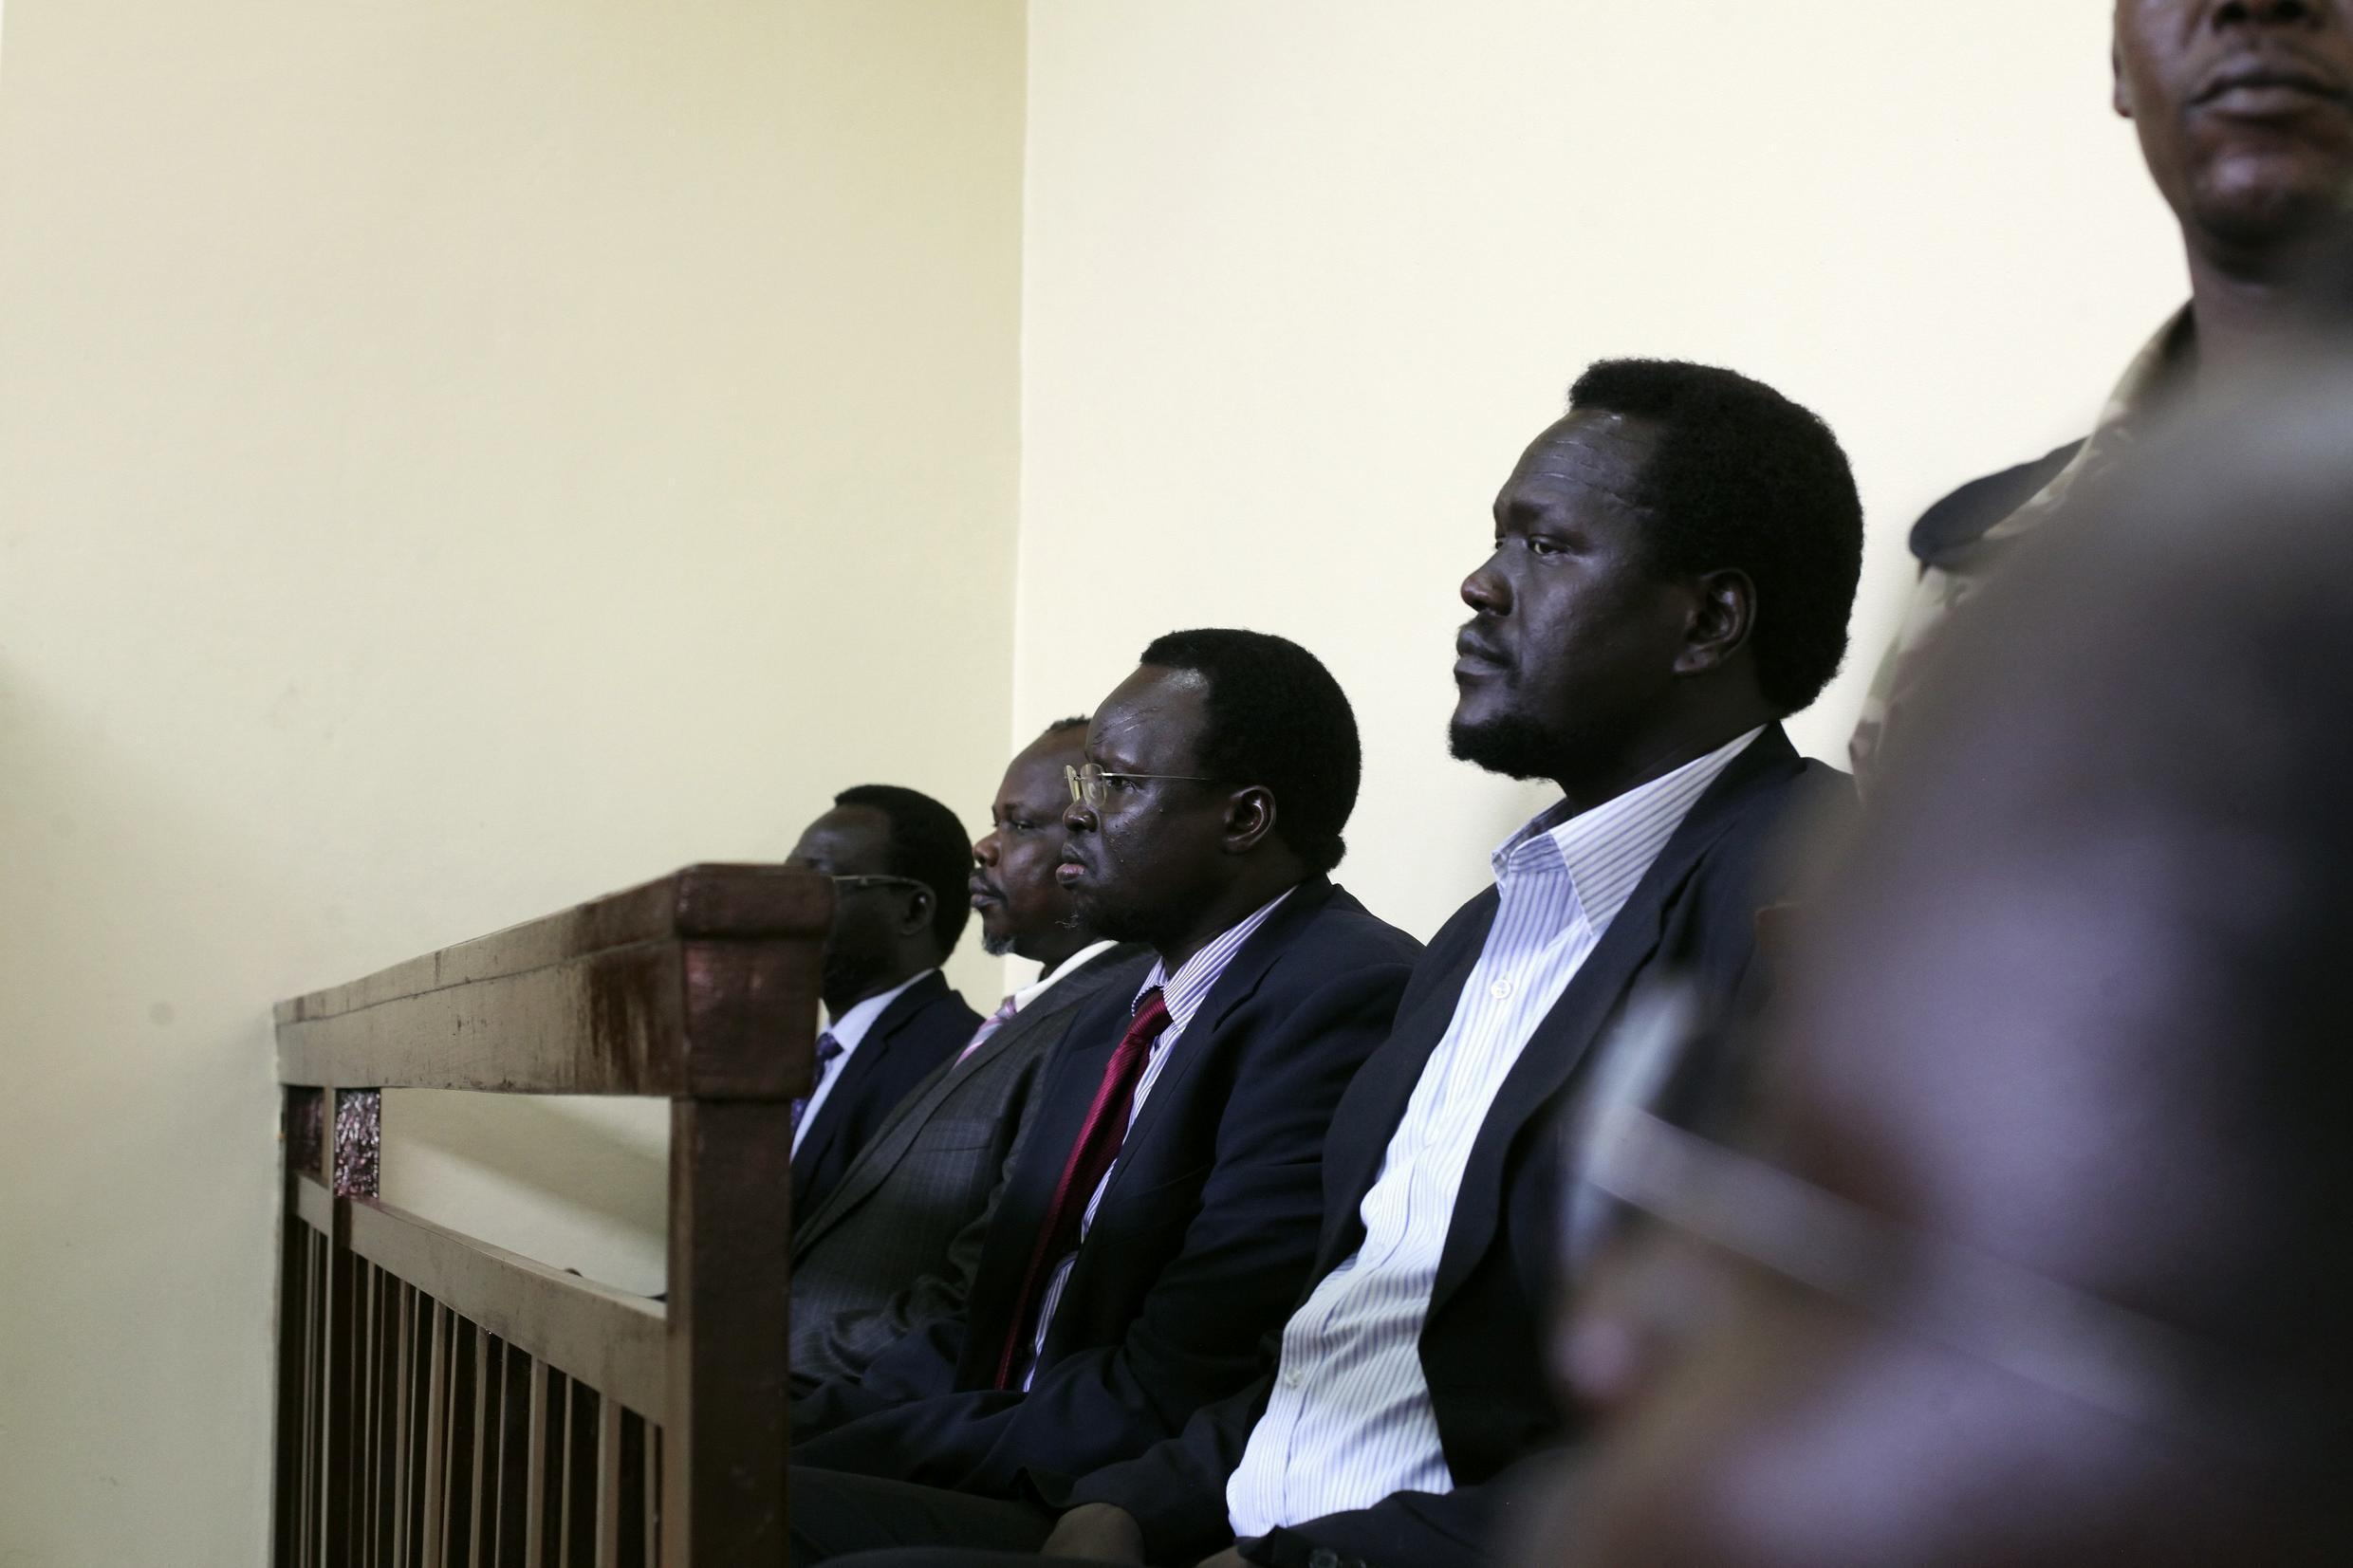 Former national security minister Oyai Deng Ajak, former secretary general of the SPLM party Pagan Amum, former deputy finance minister Majak D'Agoot and ex-ambassador to the US Ezekiel Gatkuoth, attend their court trial in Juba, 11 March 2014.